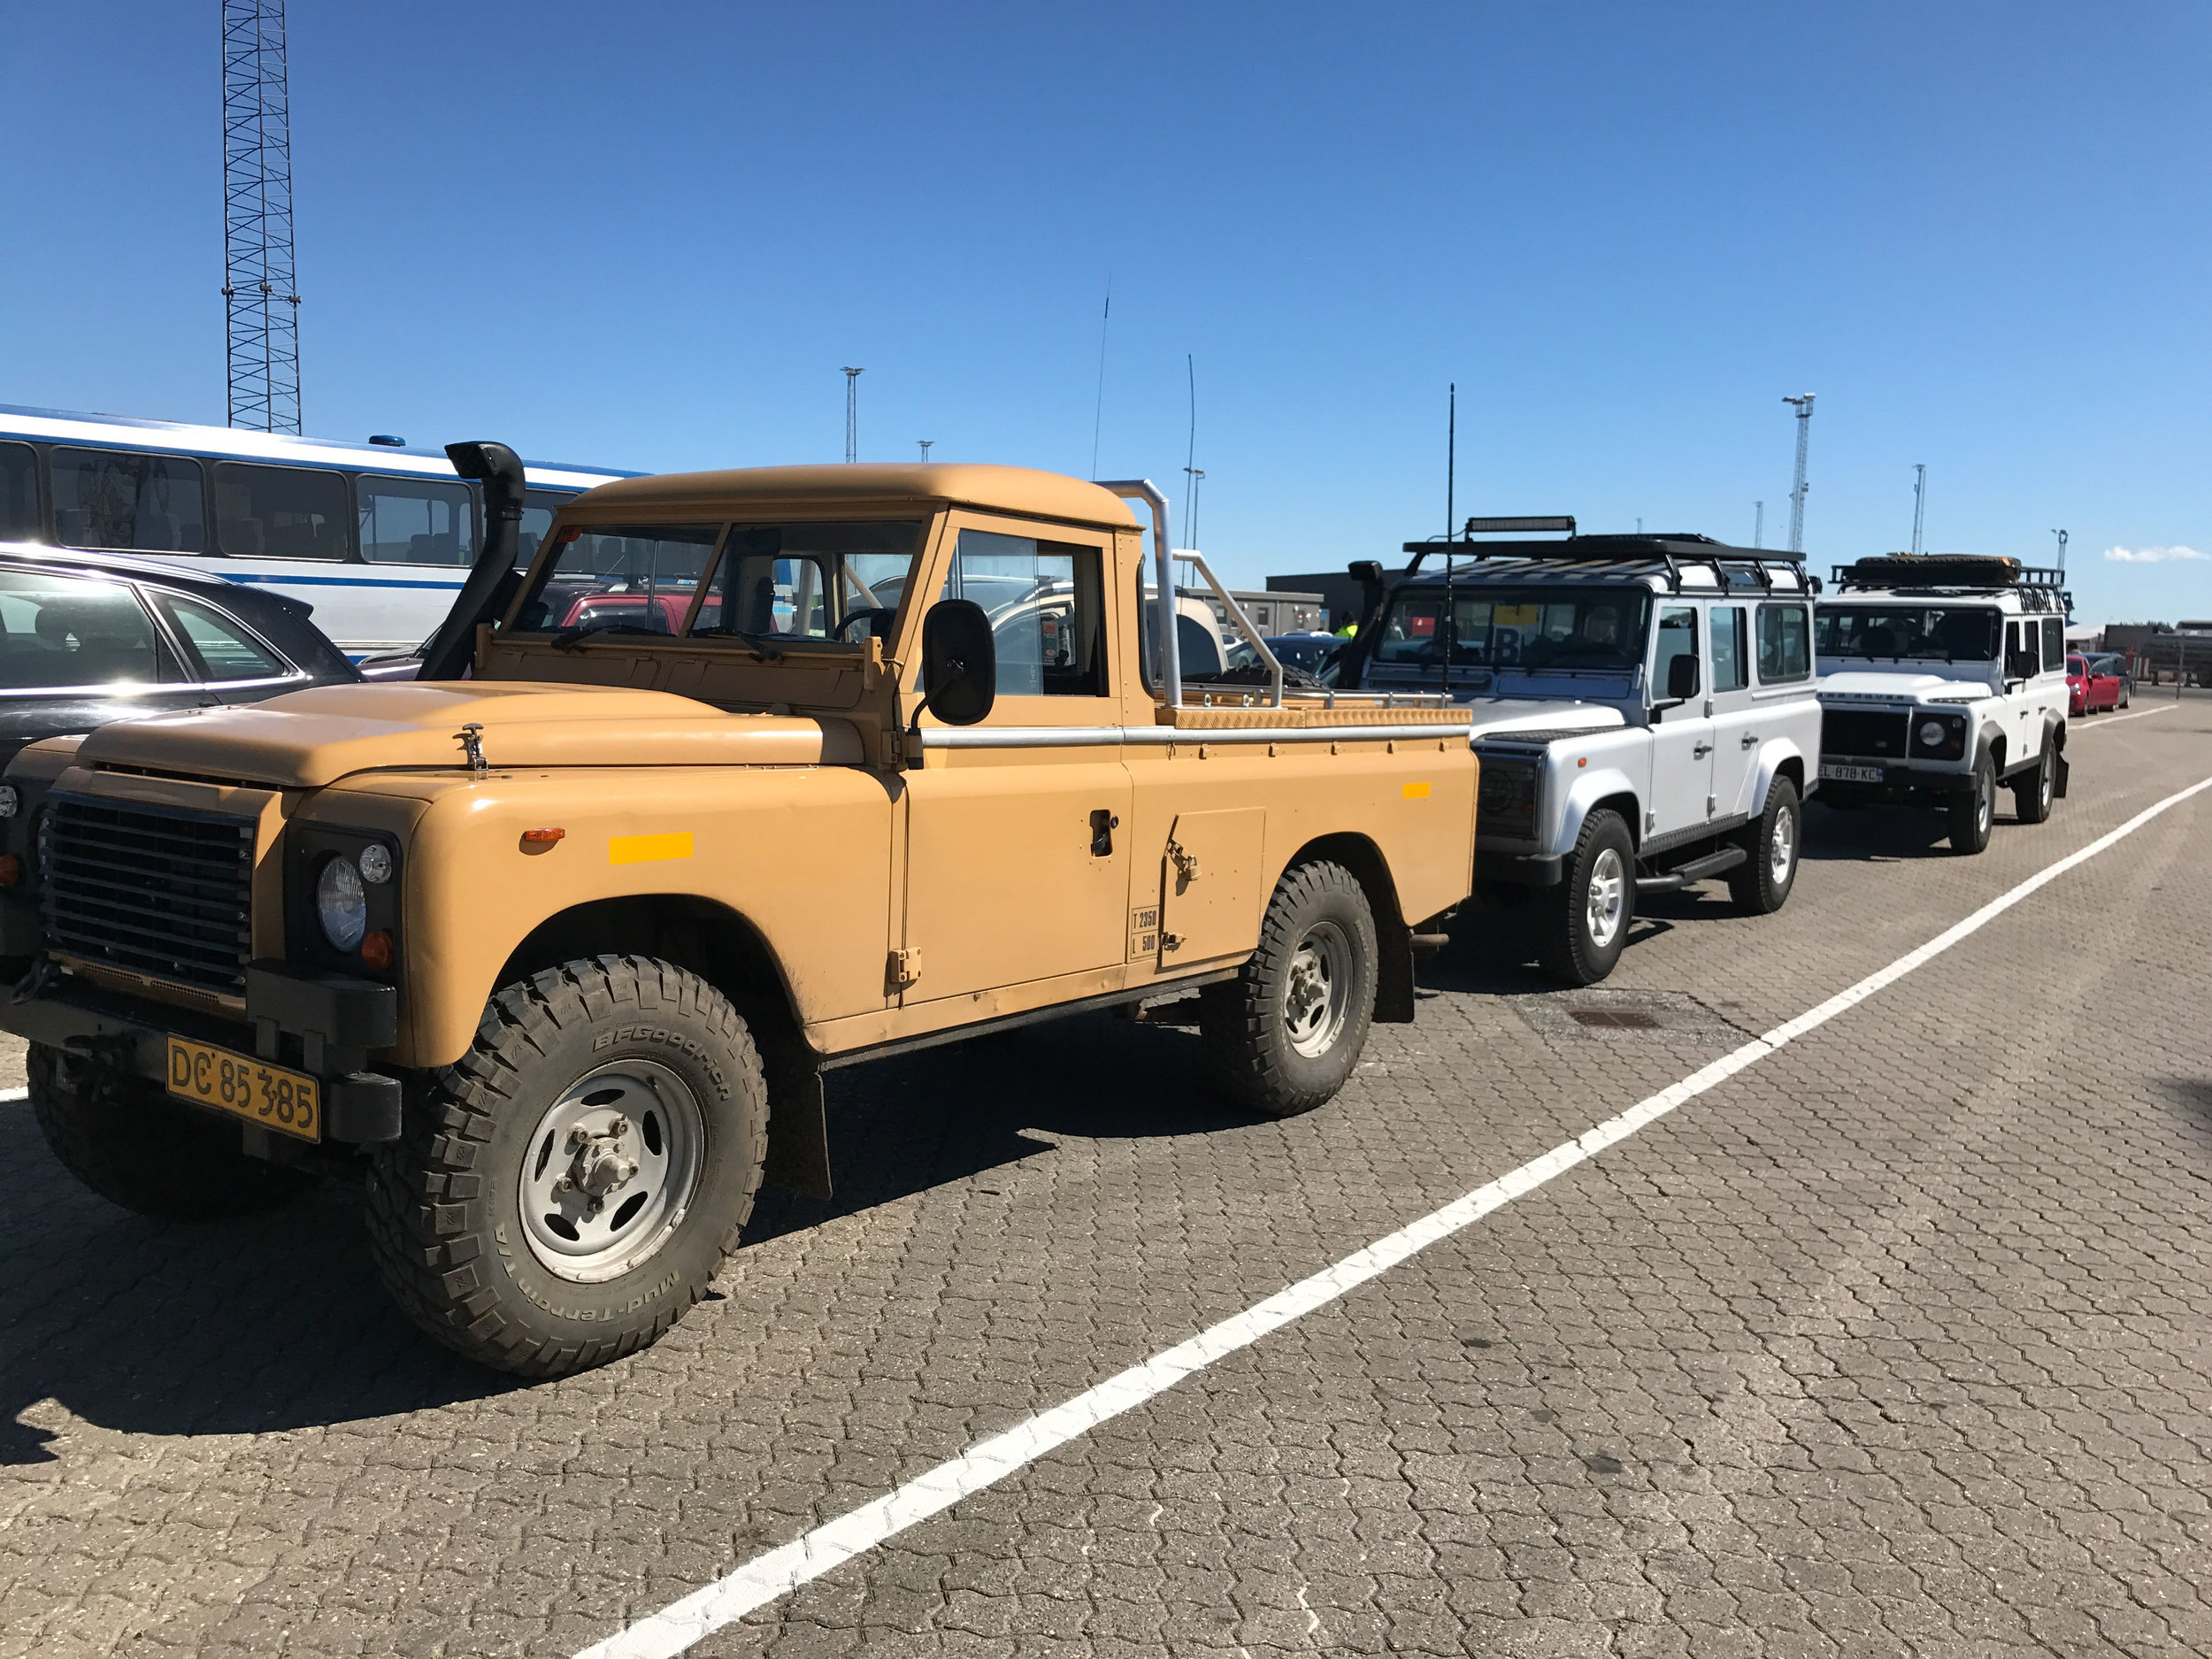 Three Landys deep lining up for the ferry